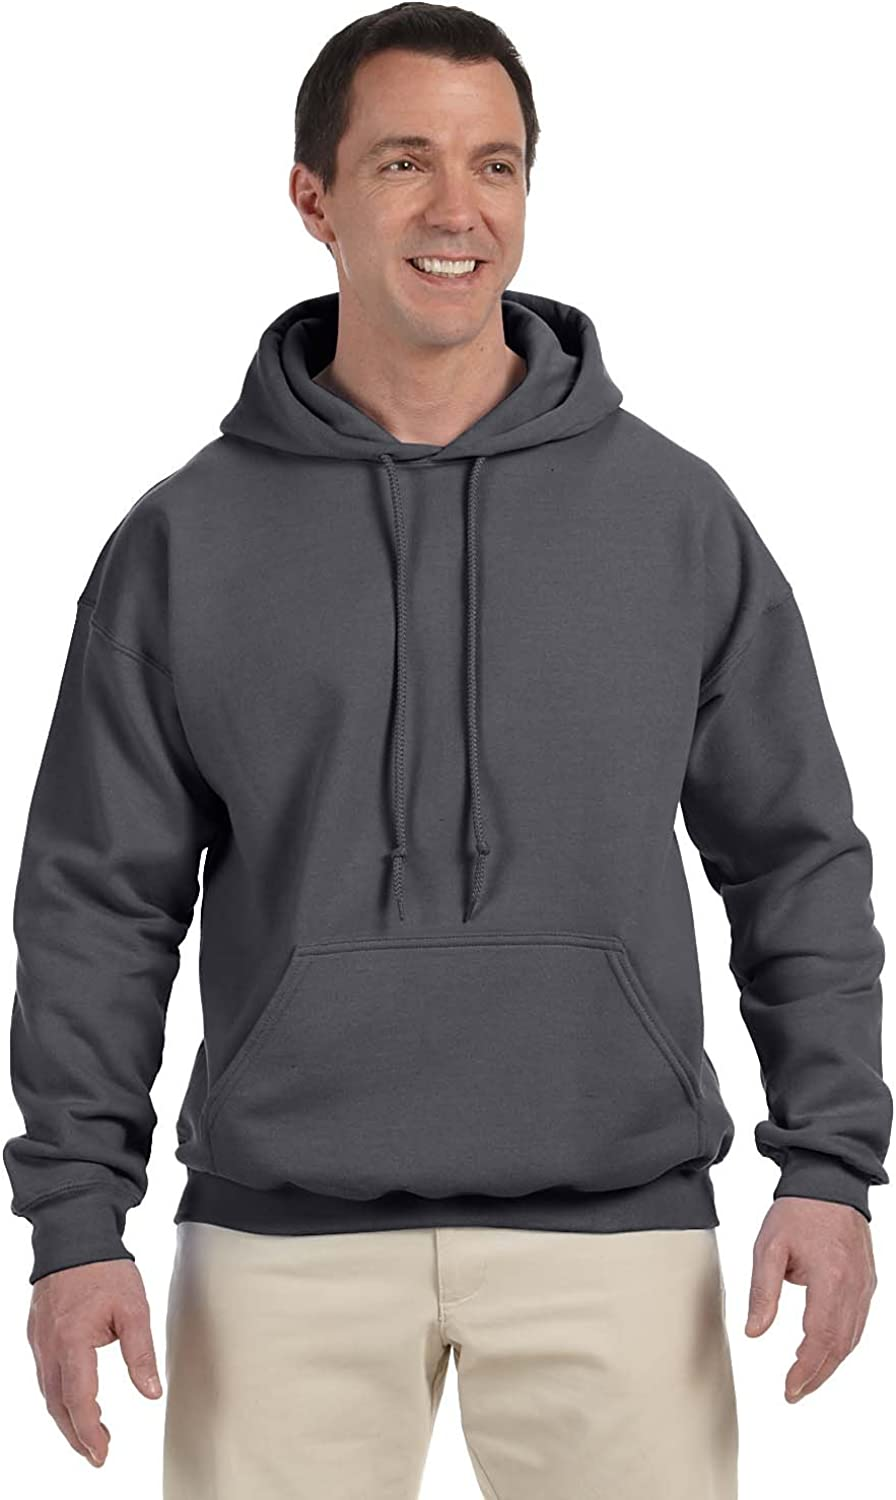 Indica Plateau Snow Mexican Unisex Adult Hoodie